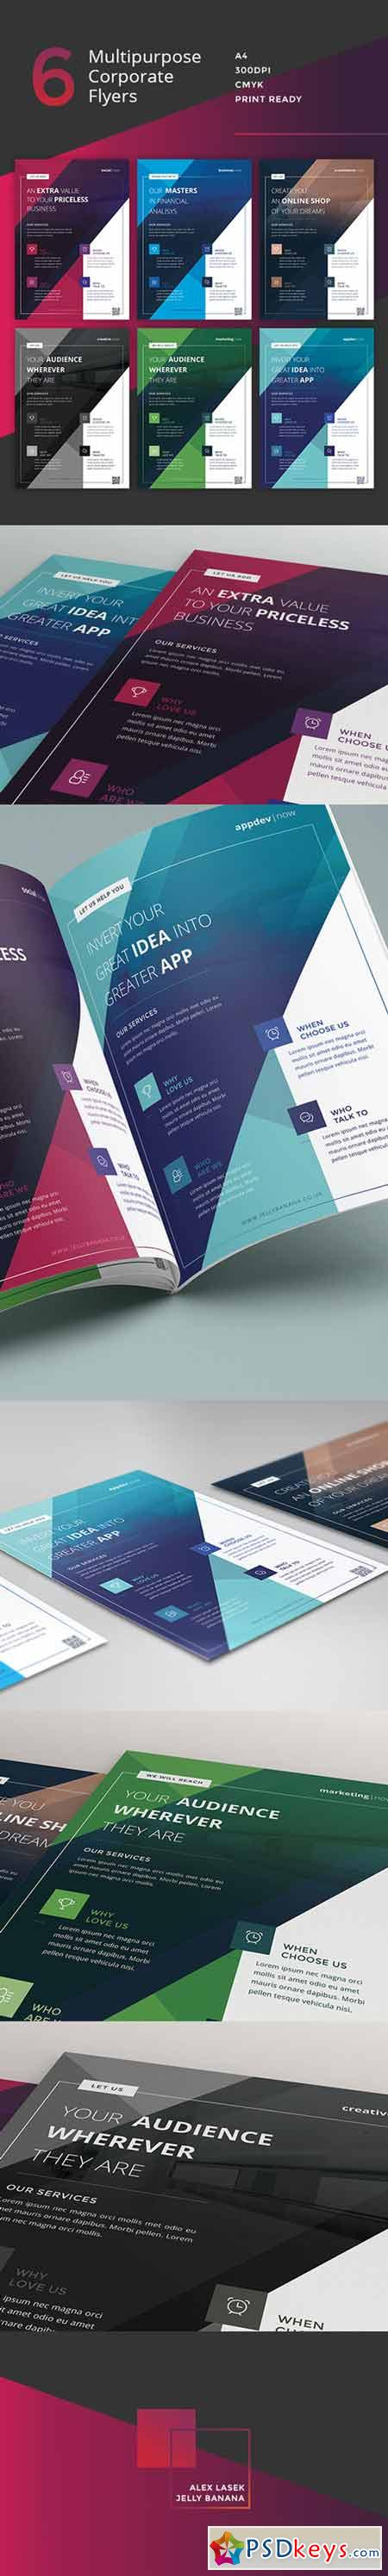 flyer templates page photoshop vector stock 6 multipurpose business flyers ads 379450